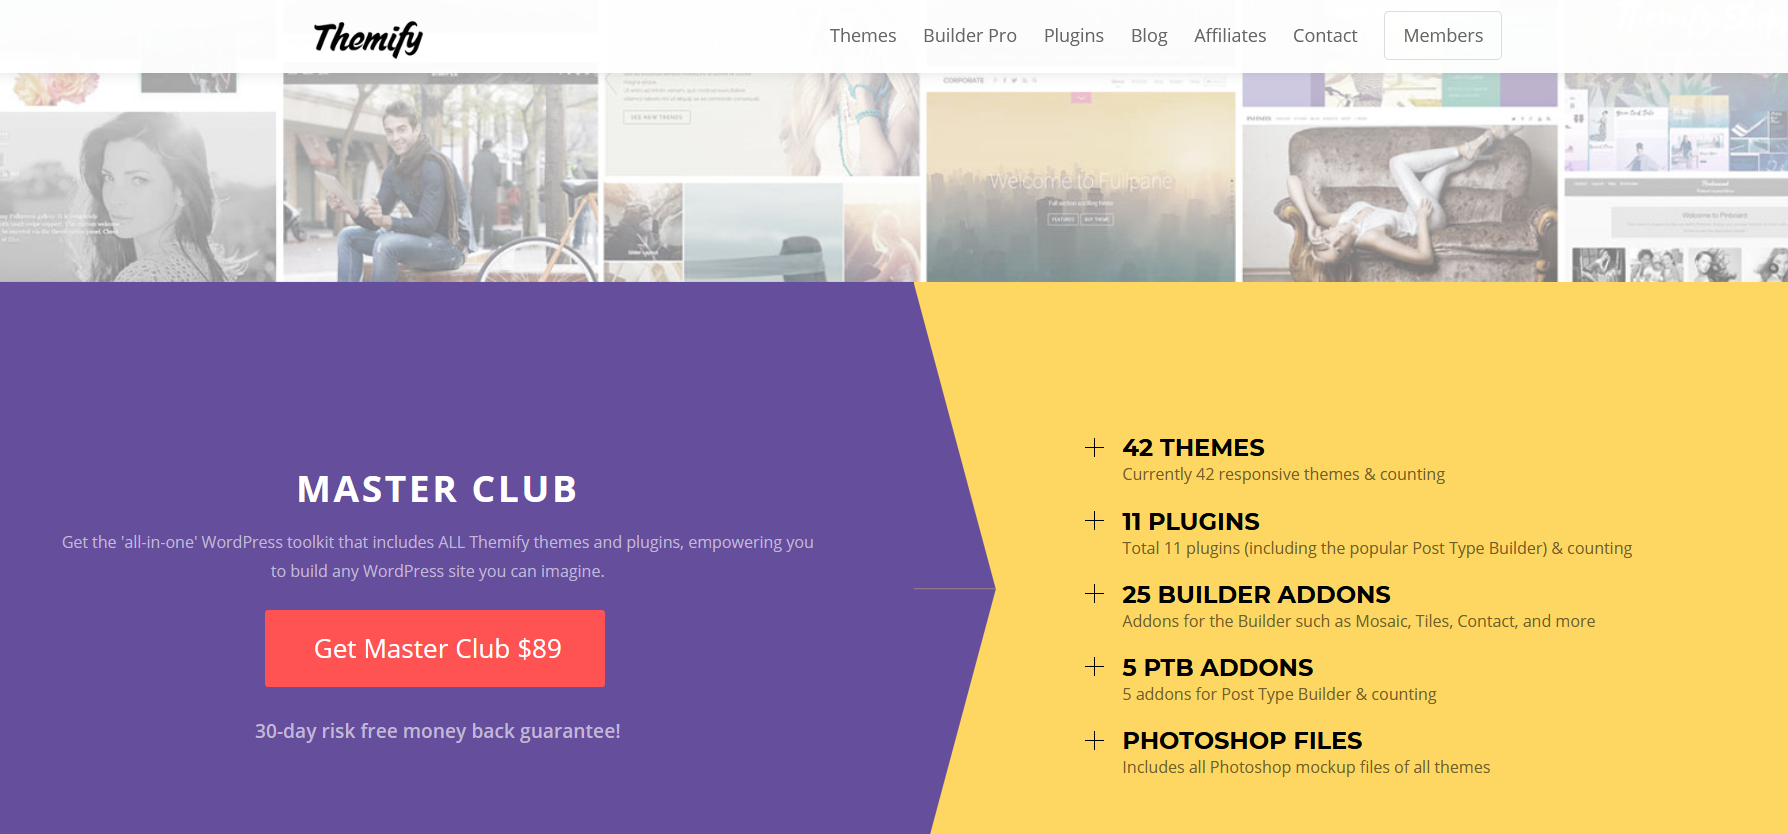 themify theme wordpress